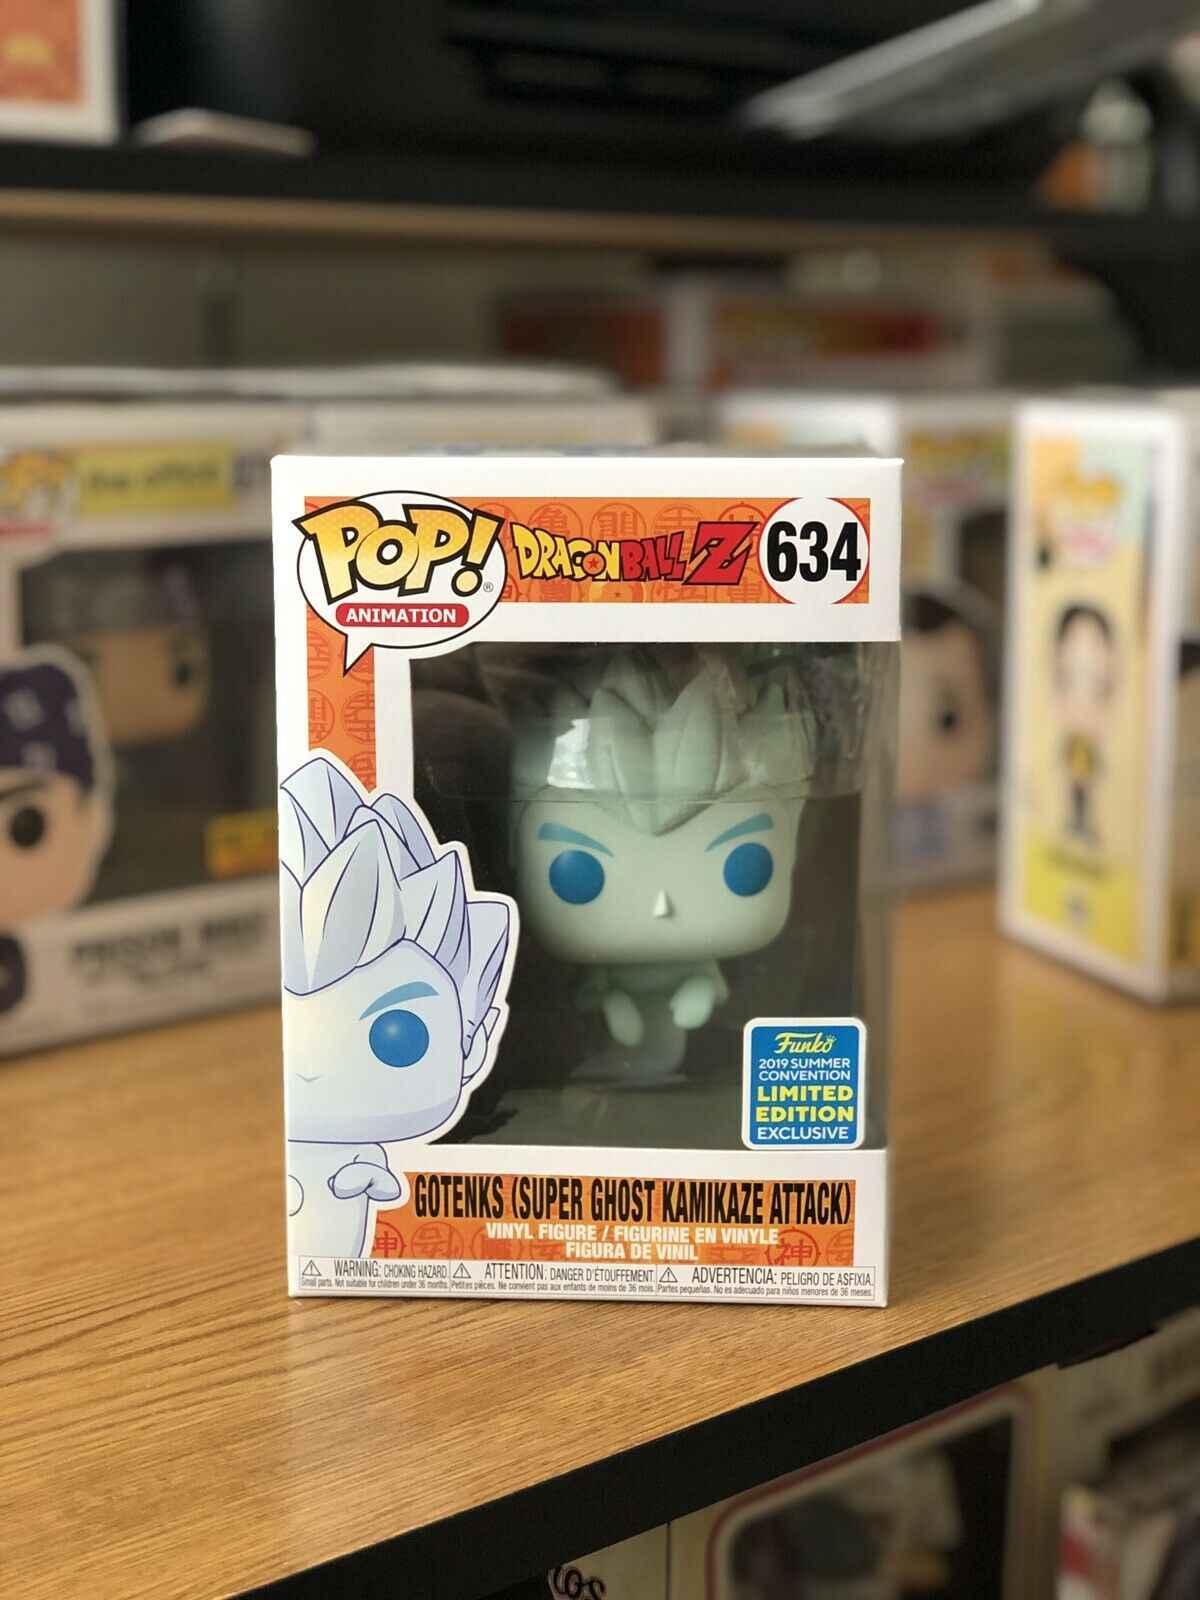 2019 Funko pop Oficial SDCC Exclusive Dragon Ball Z-Gotenks como Fantasma Kamikaze Vinyl Figure Collectible Toy Modelo Na caixa